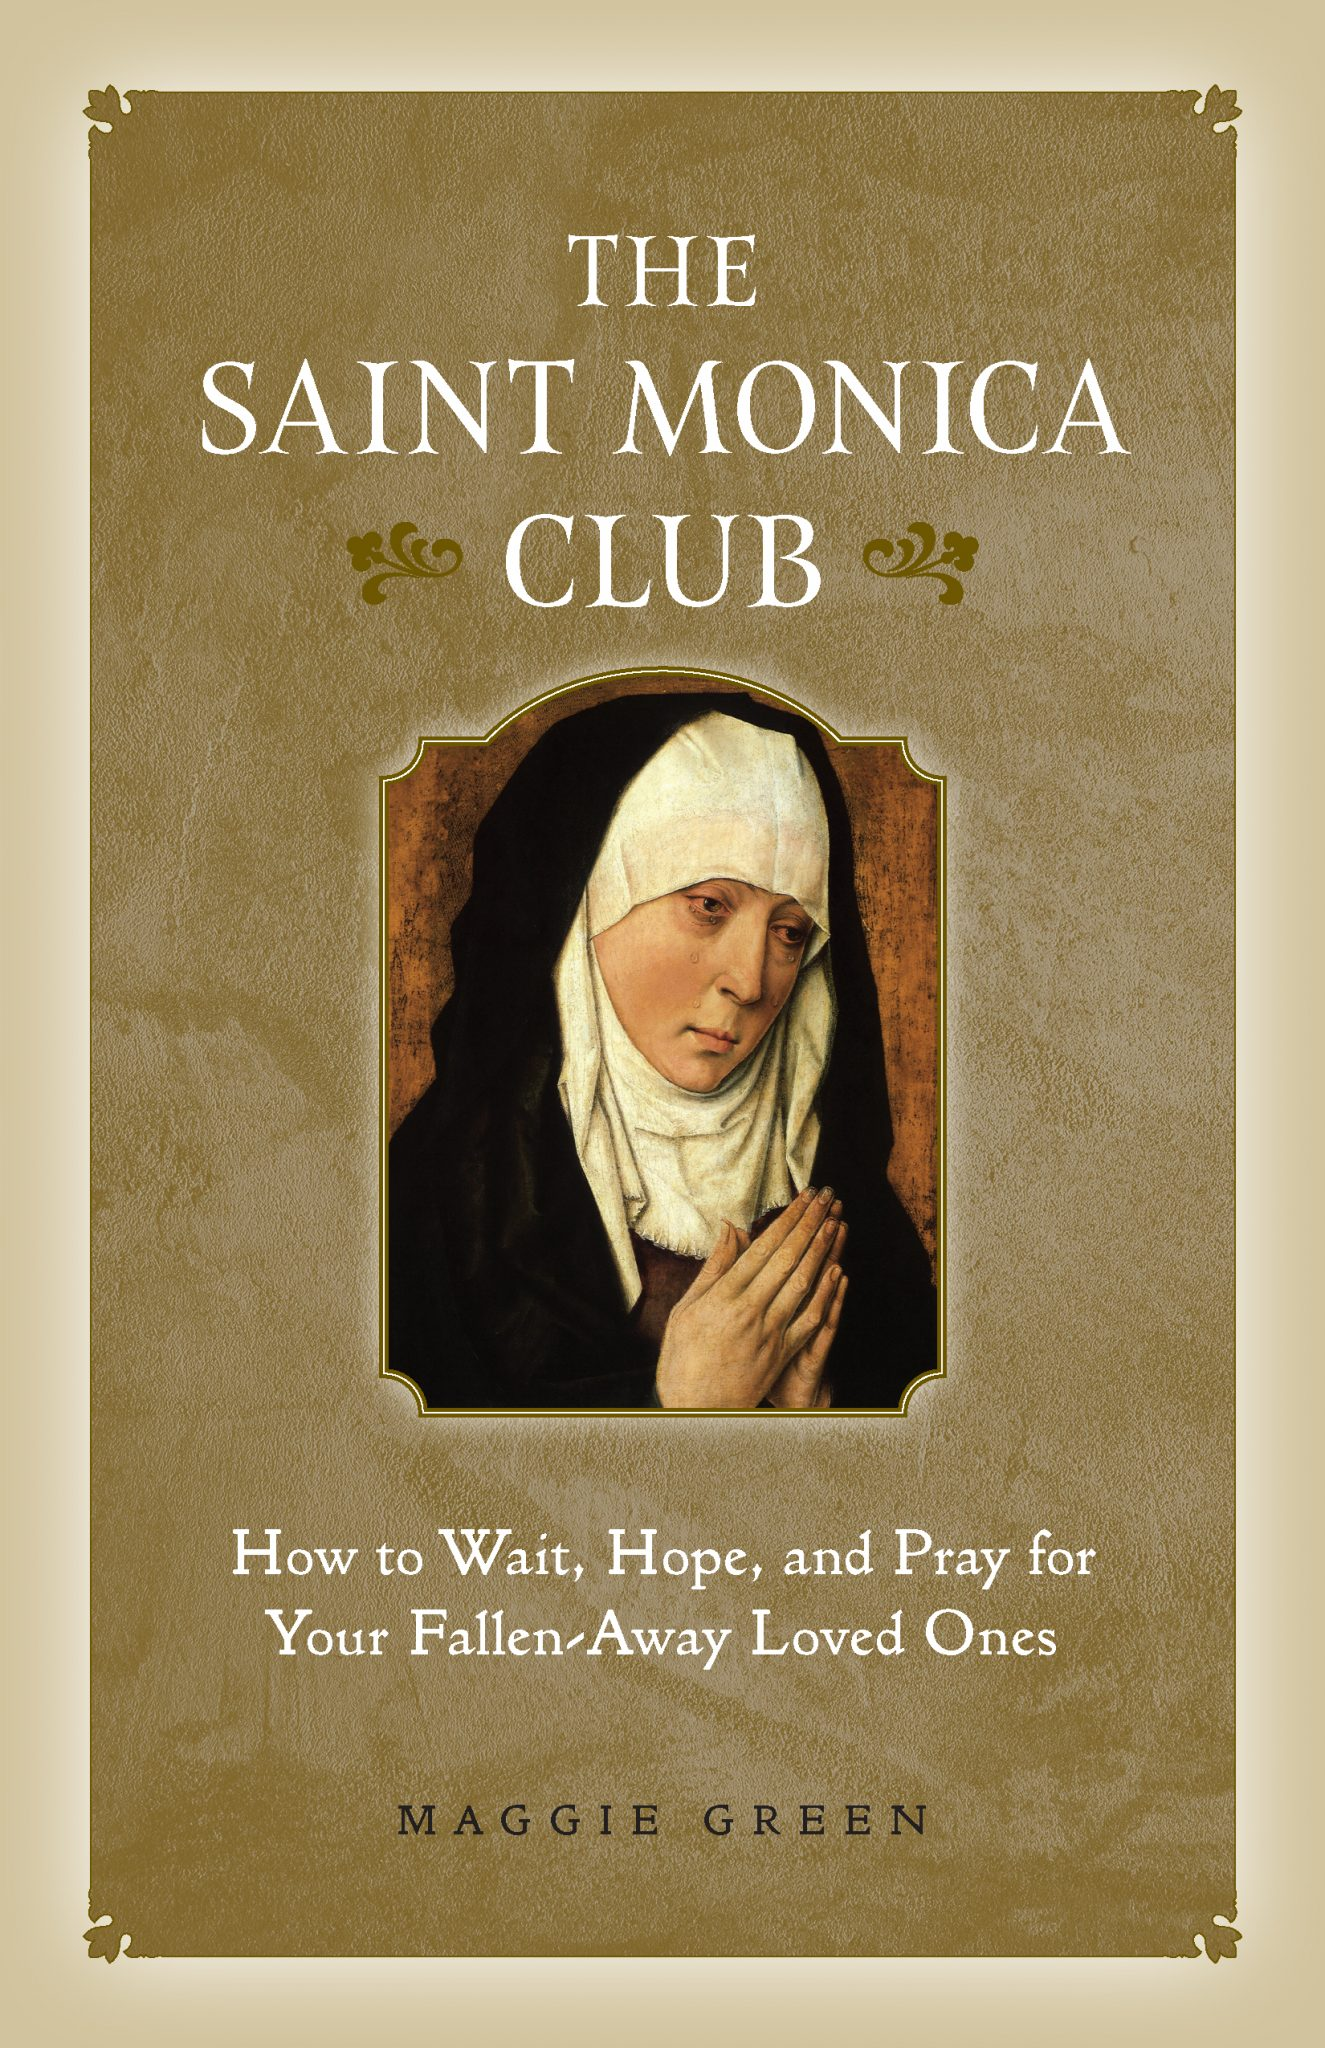 7237-st-monica-club_front-cover (3)